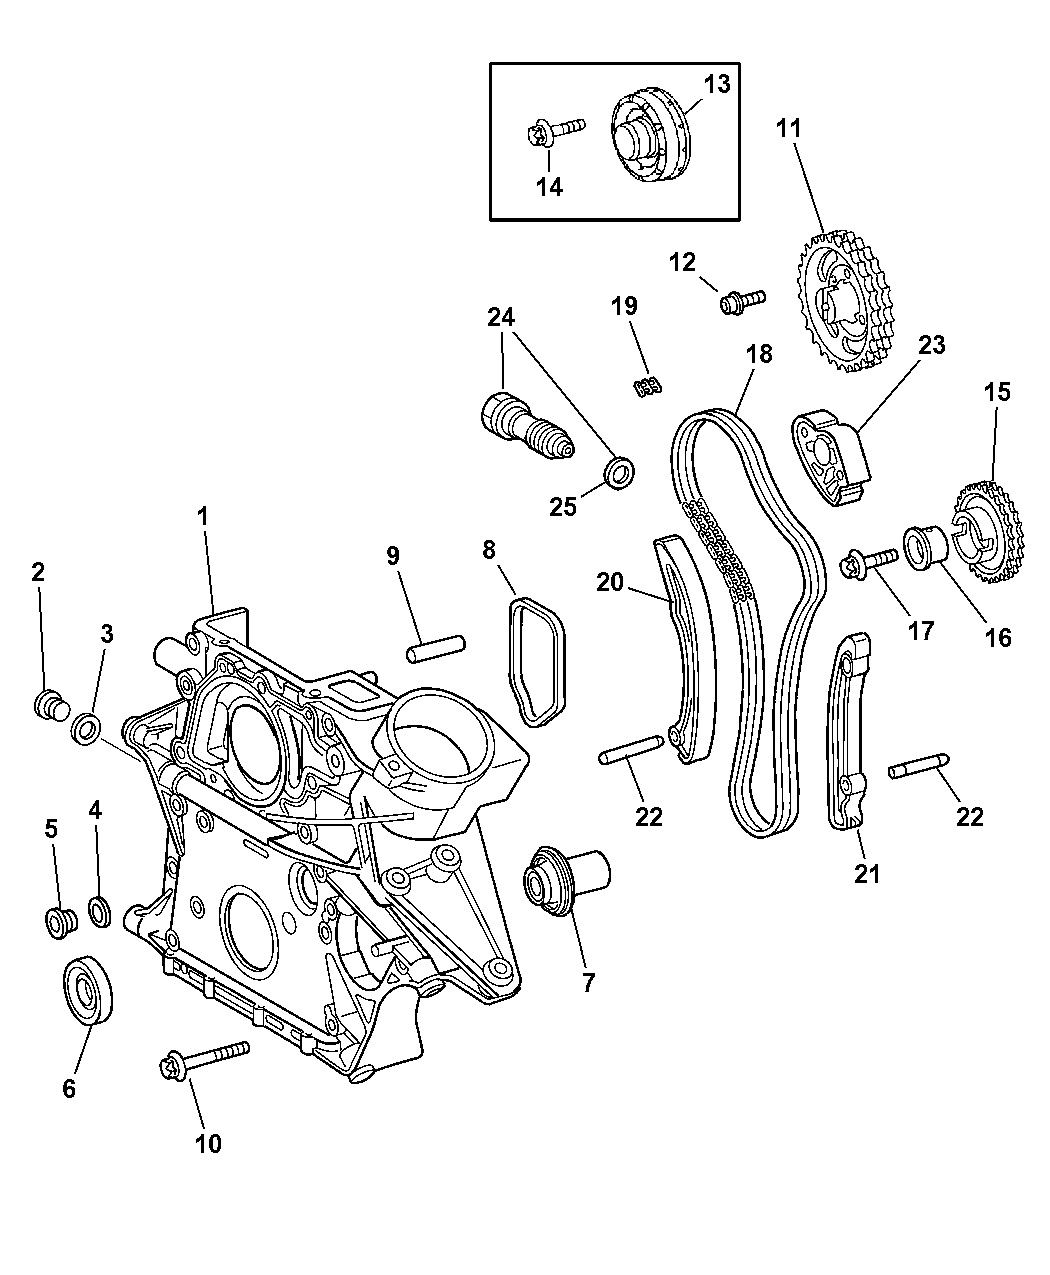 Touring furthermore 04724525AC further Mopar Guide Timing Chain 5080101aa likewise 2003 Land Rover Freelander Parts Catalog additionally 04724767AE. on pt cruiser roof diagram